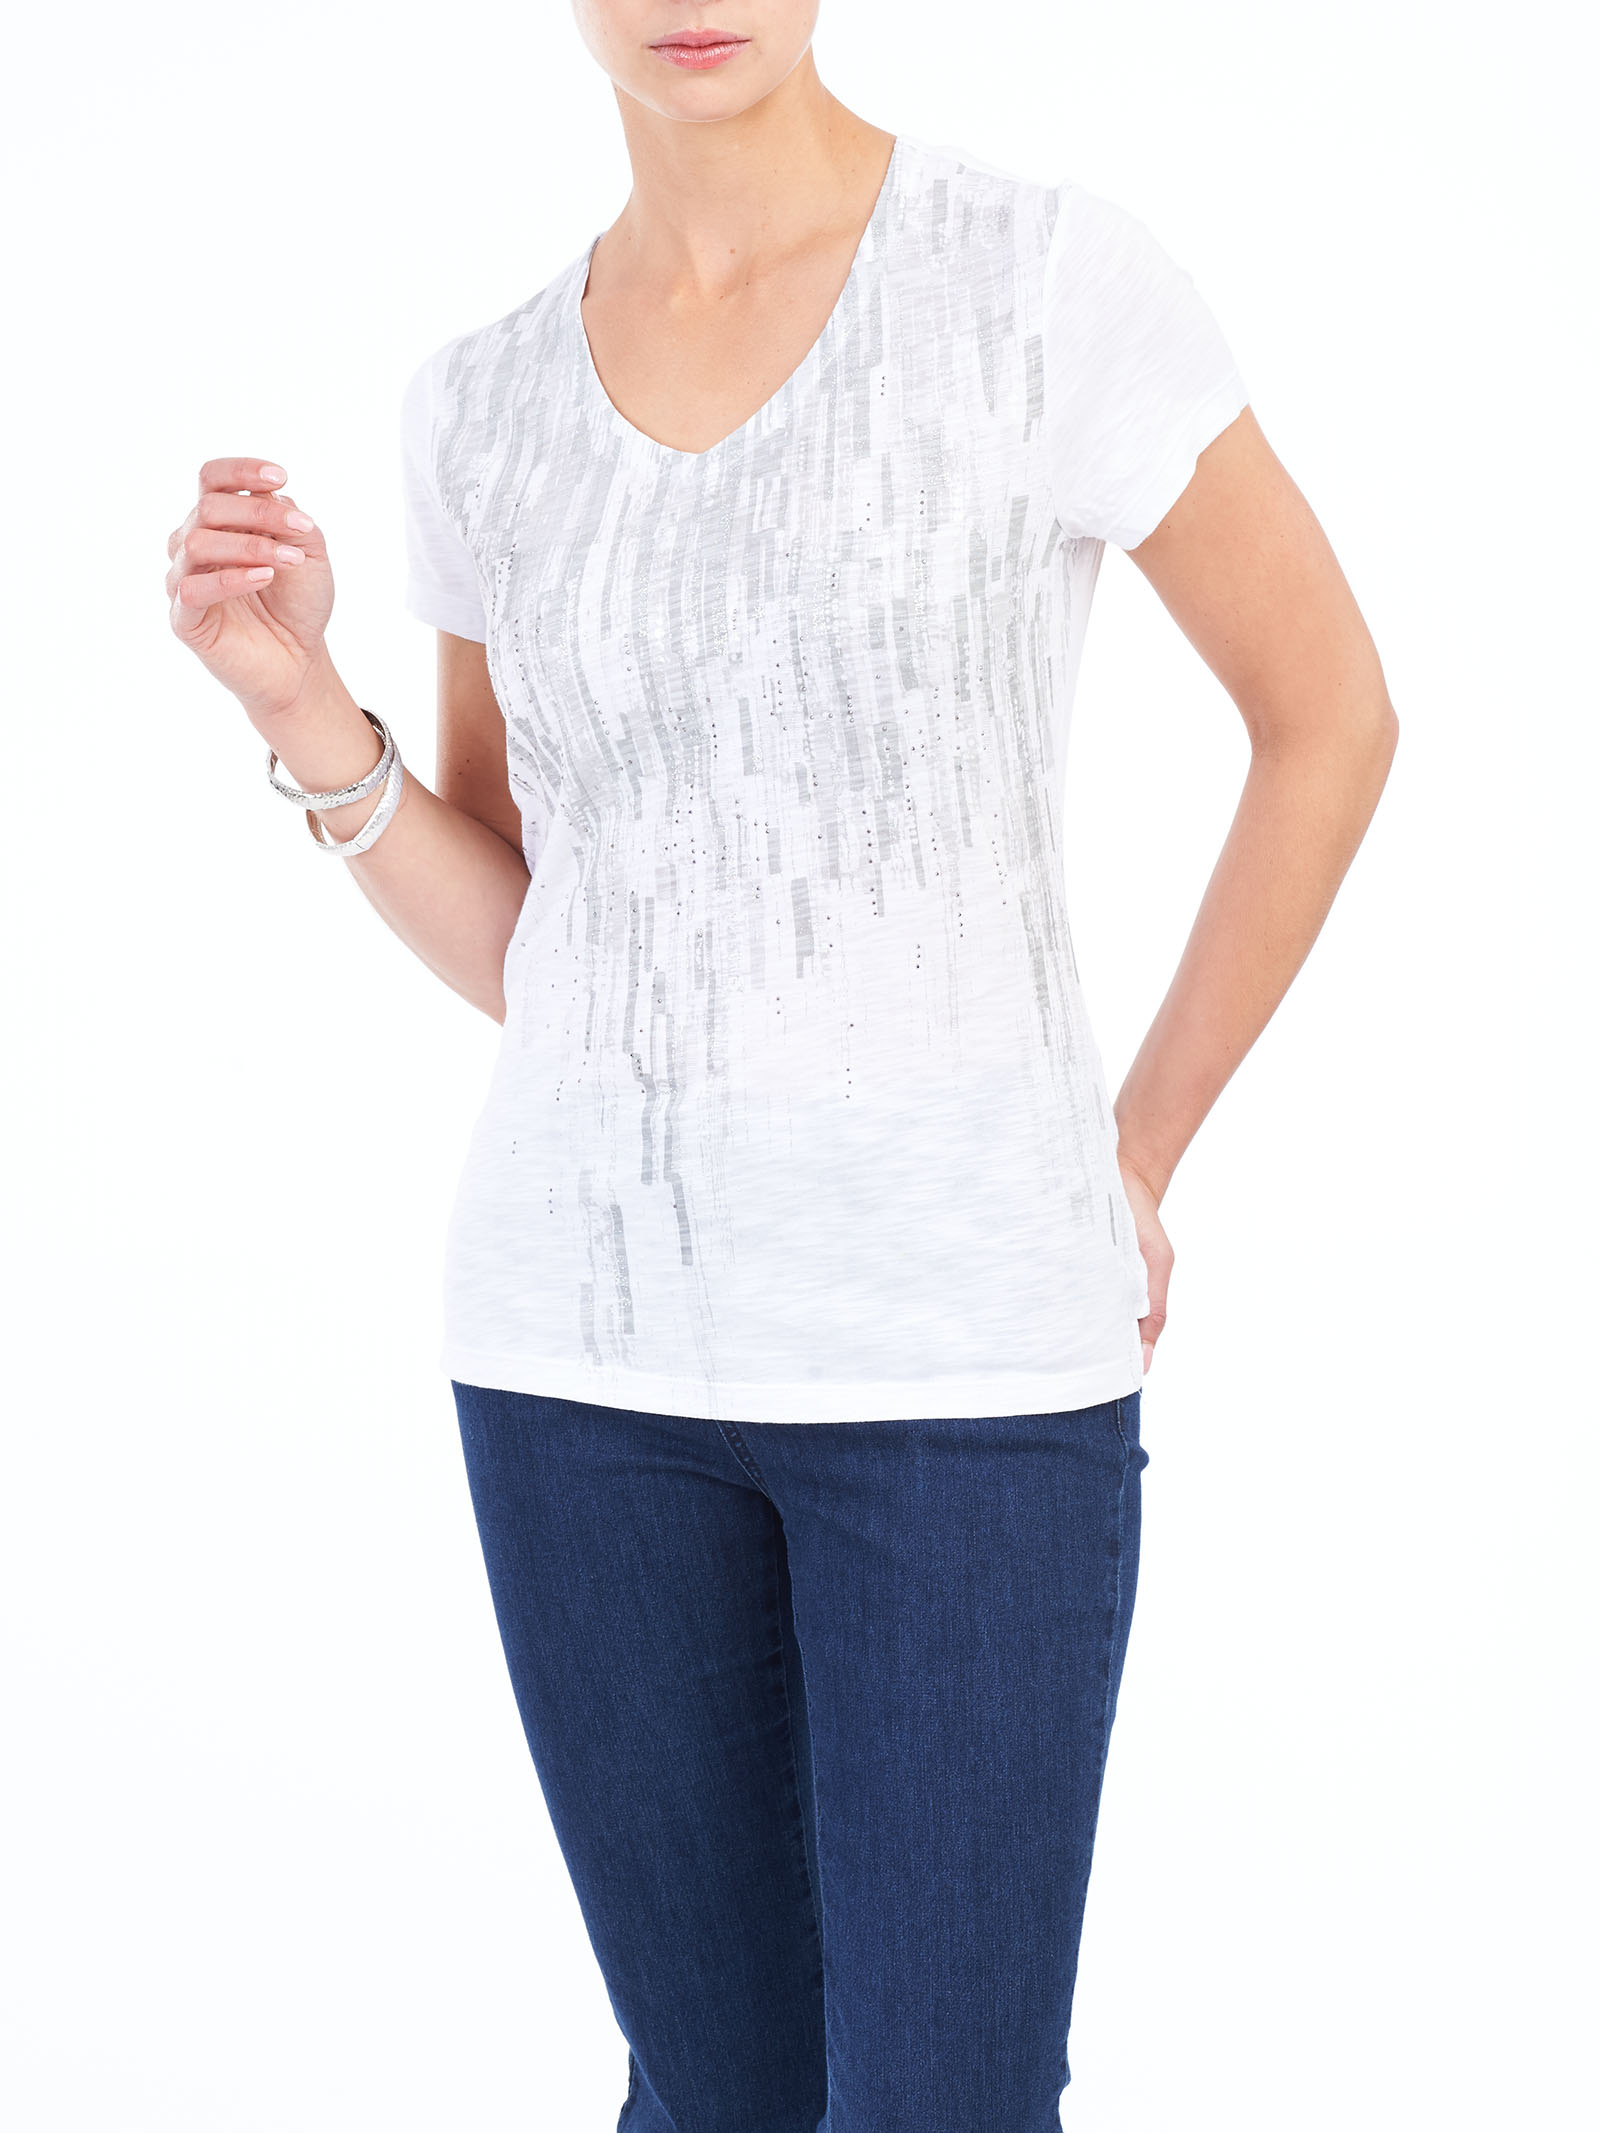 V-Neck Rhinestone Detail T-Shirt, Grey, hi-res